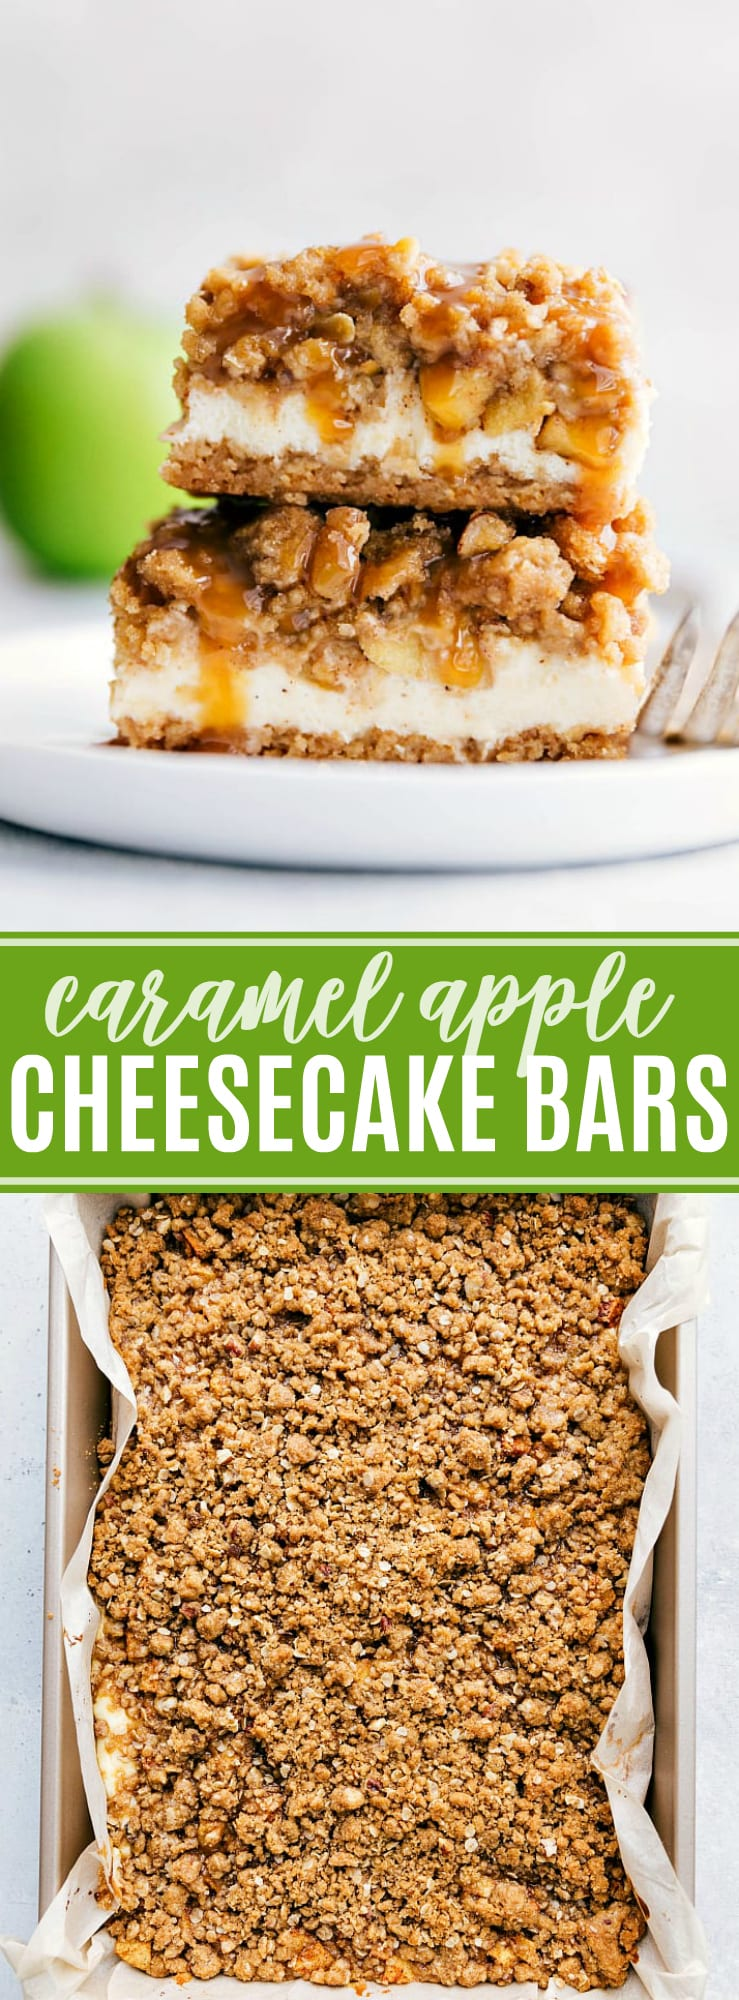 The ultimate BEST EVER caramel apple cheesecake bars with a streusel topping! The most AMAZING Fall dessert! via chelseasmessyapron.com #apple #cheesecake #bar #bars #fall #shower #bridal #baby #dessert #easy #caramel #caramelapple #sweet #streusel #dessesrts